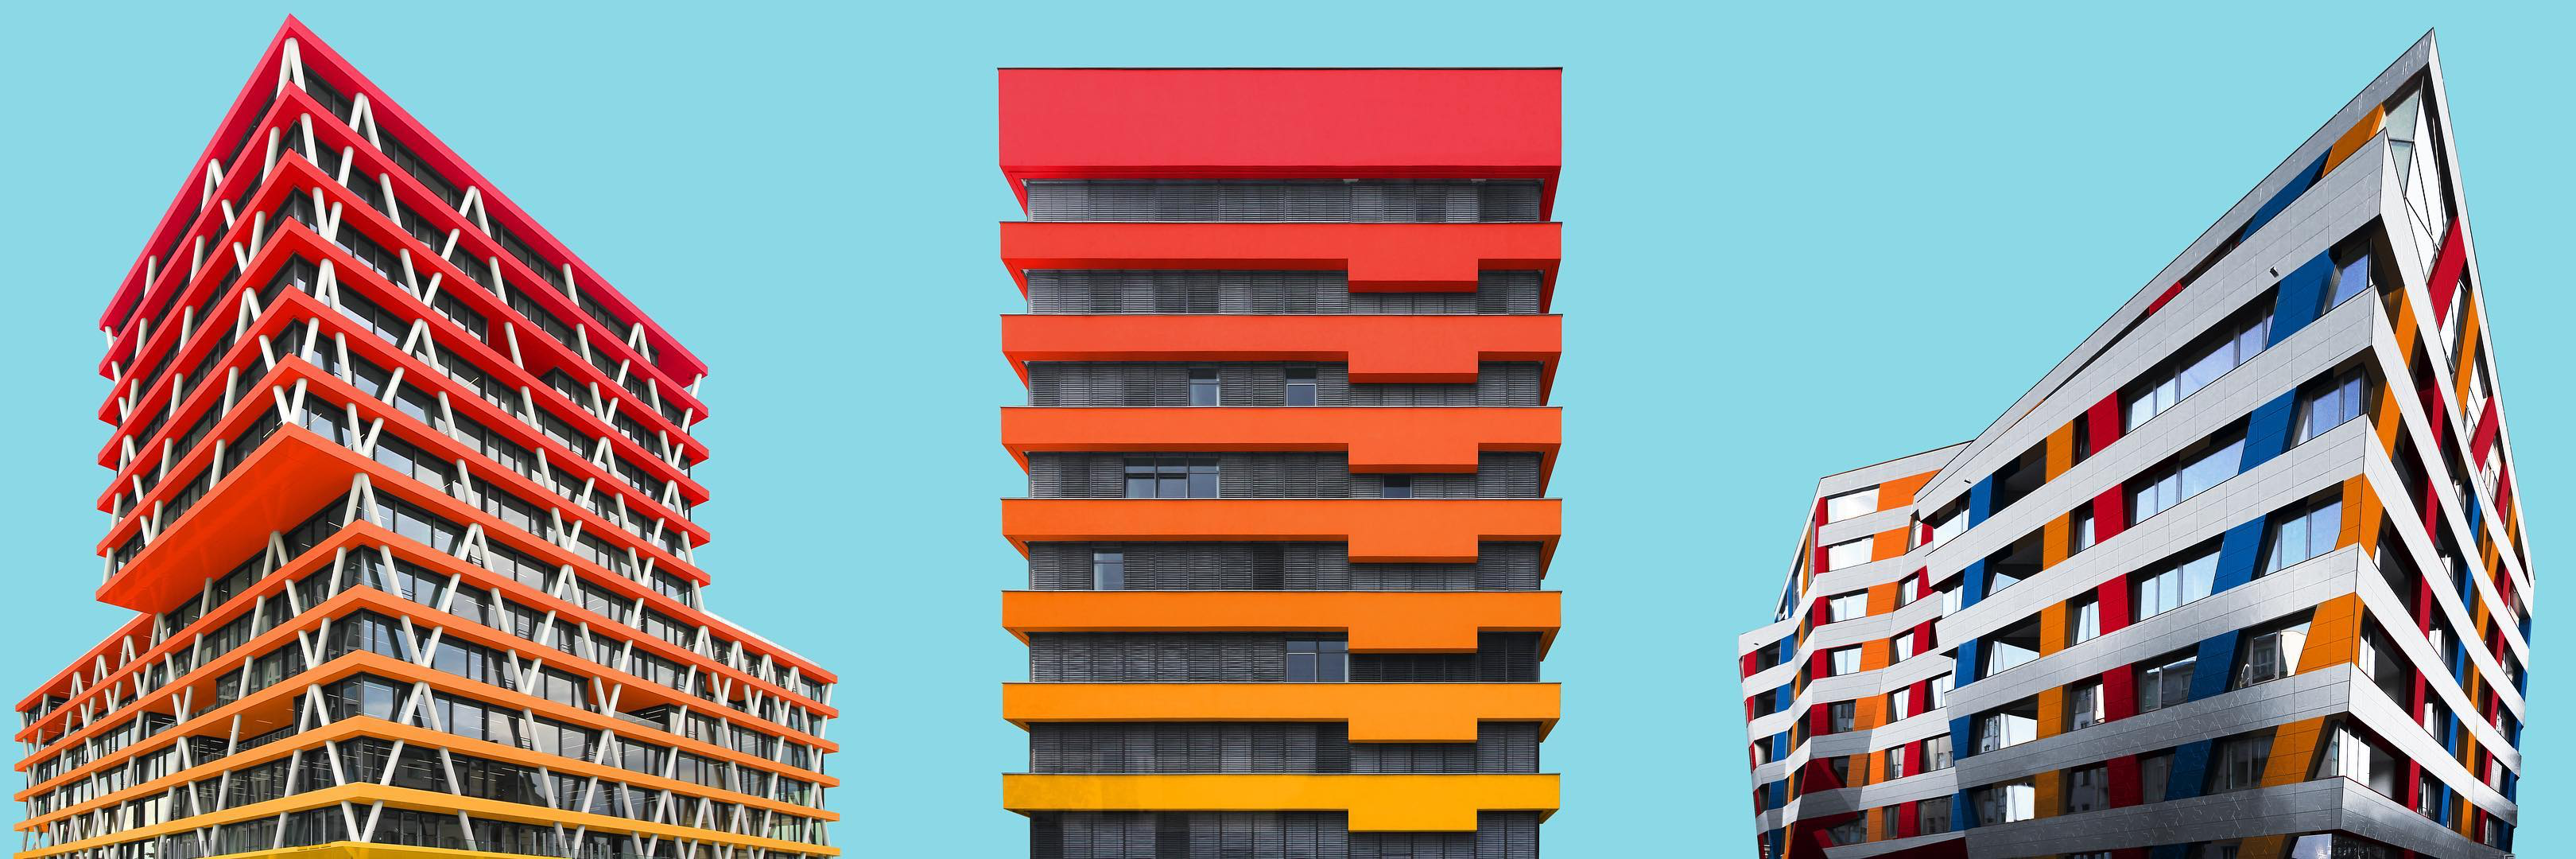 The Perception Of Color In Architecture By Tmd Studio Ltd Tmd Studio S Insights Medium